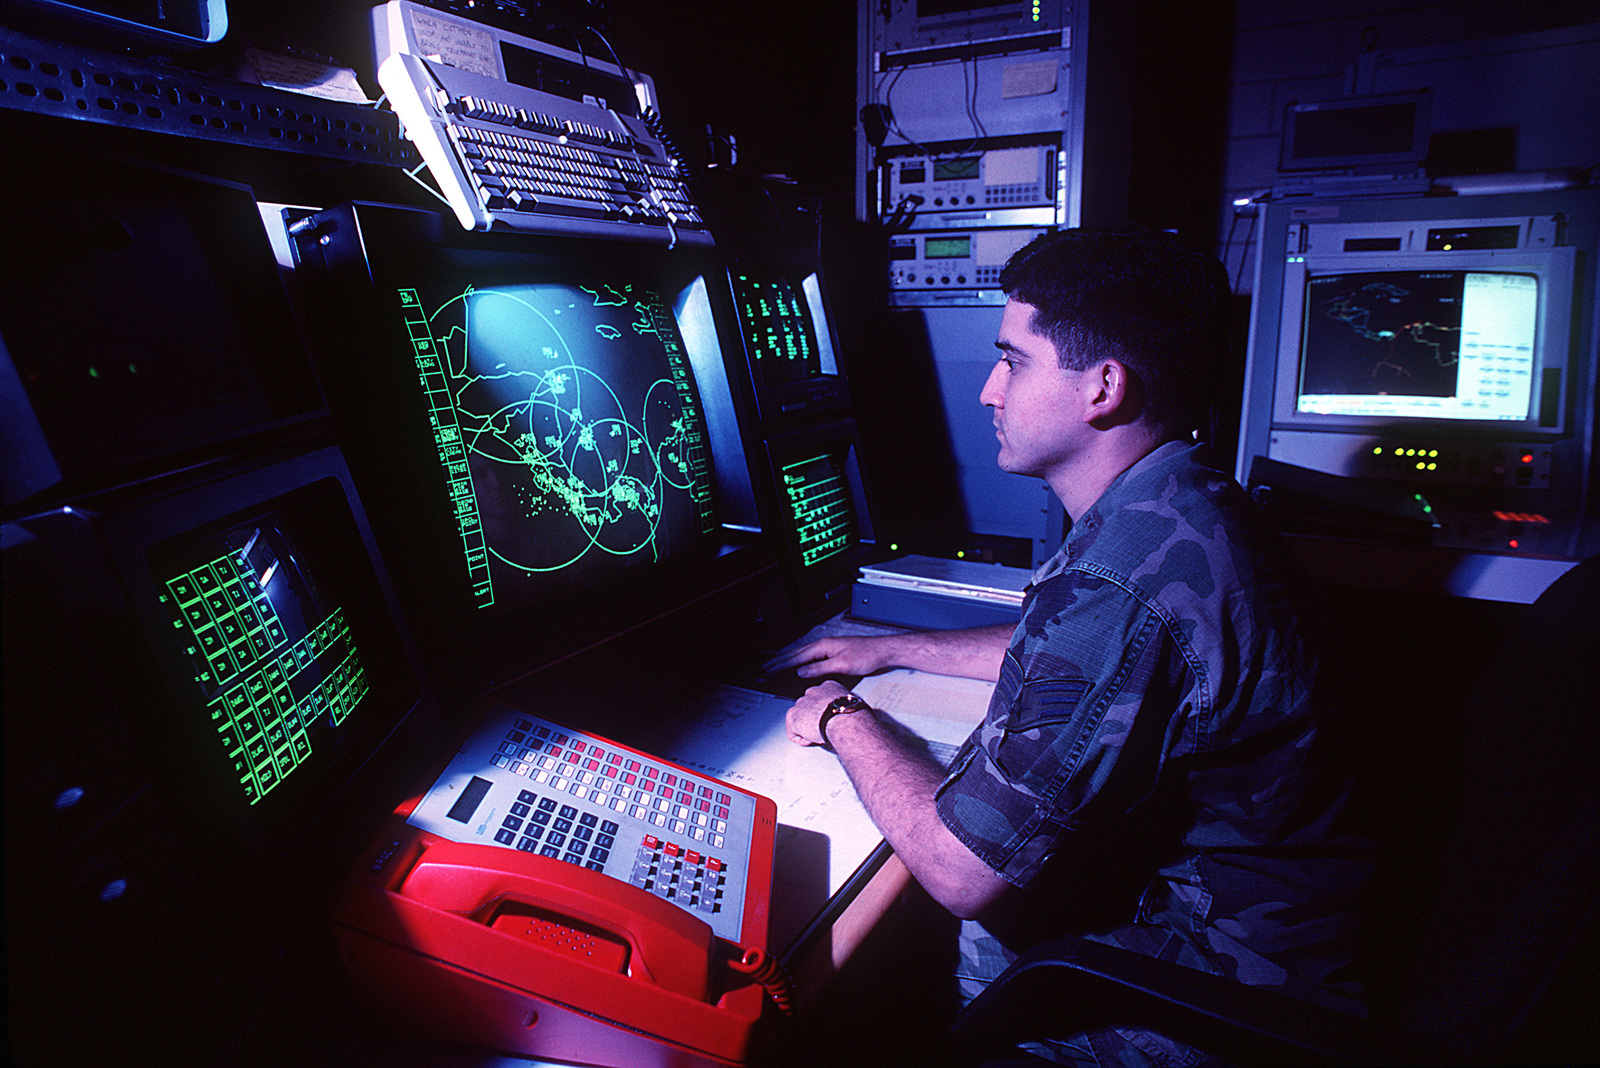 A surveillance operator at the Southern Regional Operations Center spends a  shift at a radar scope